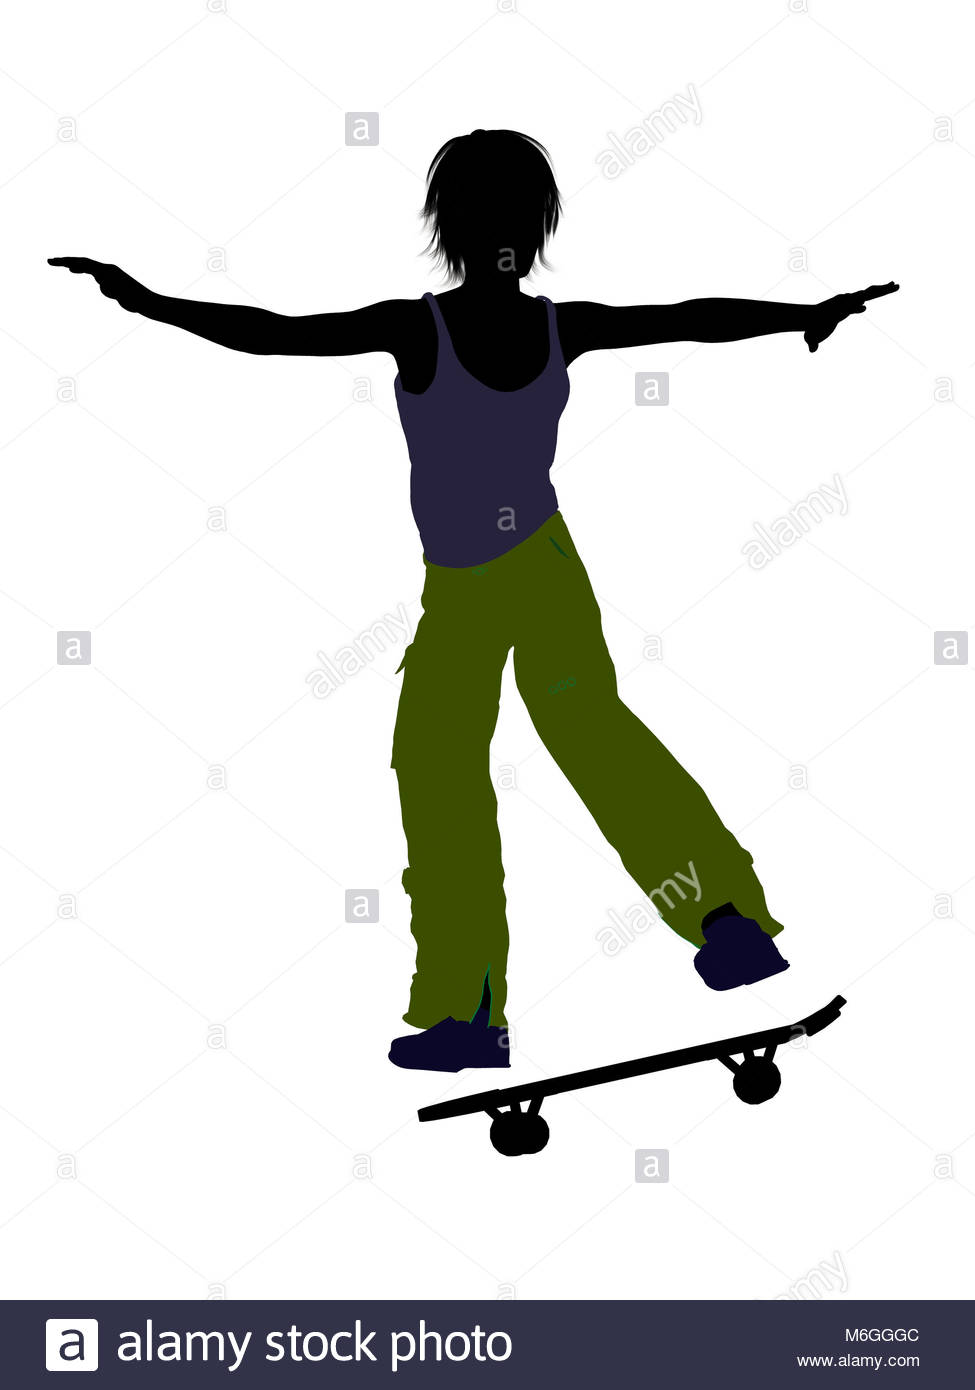 975x1390 Male Skateboarder Illustration Silhouette On A White Background